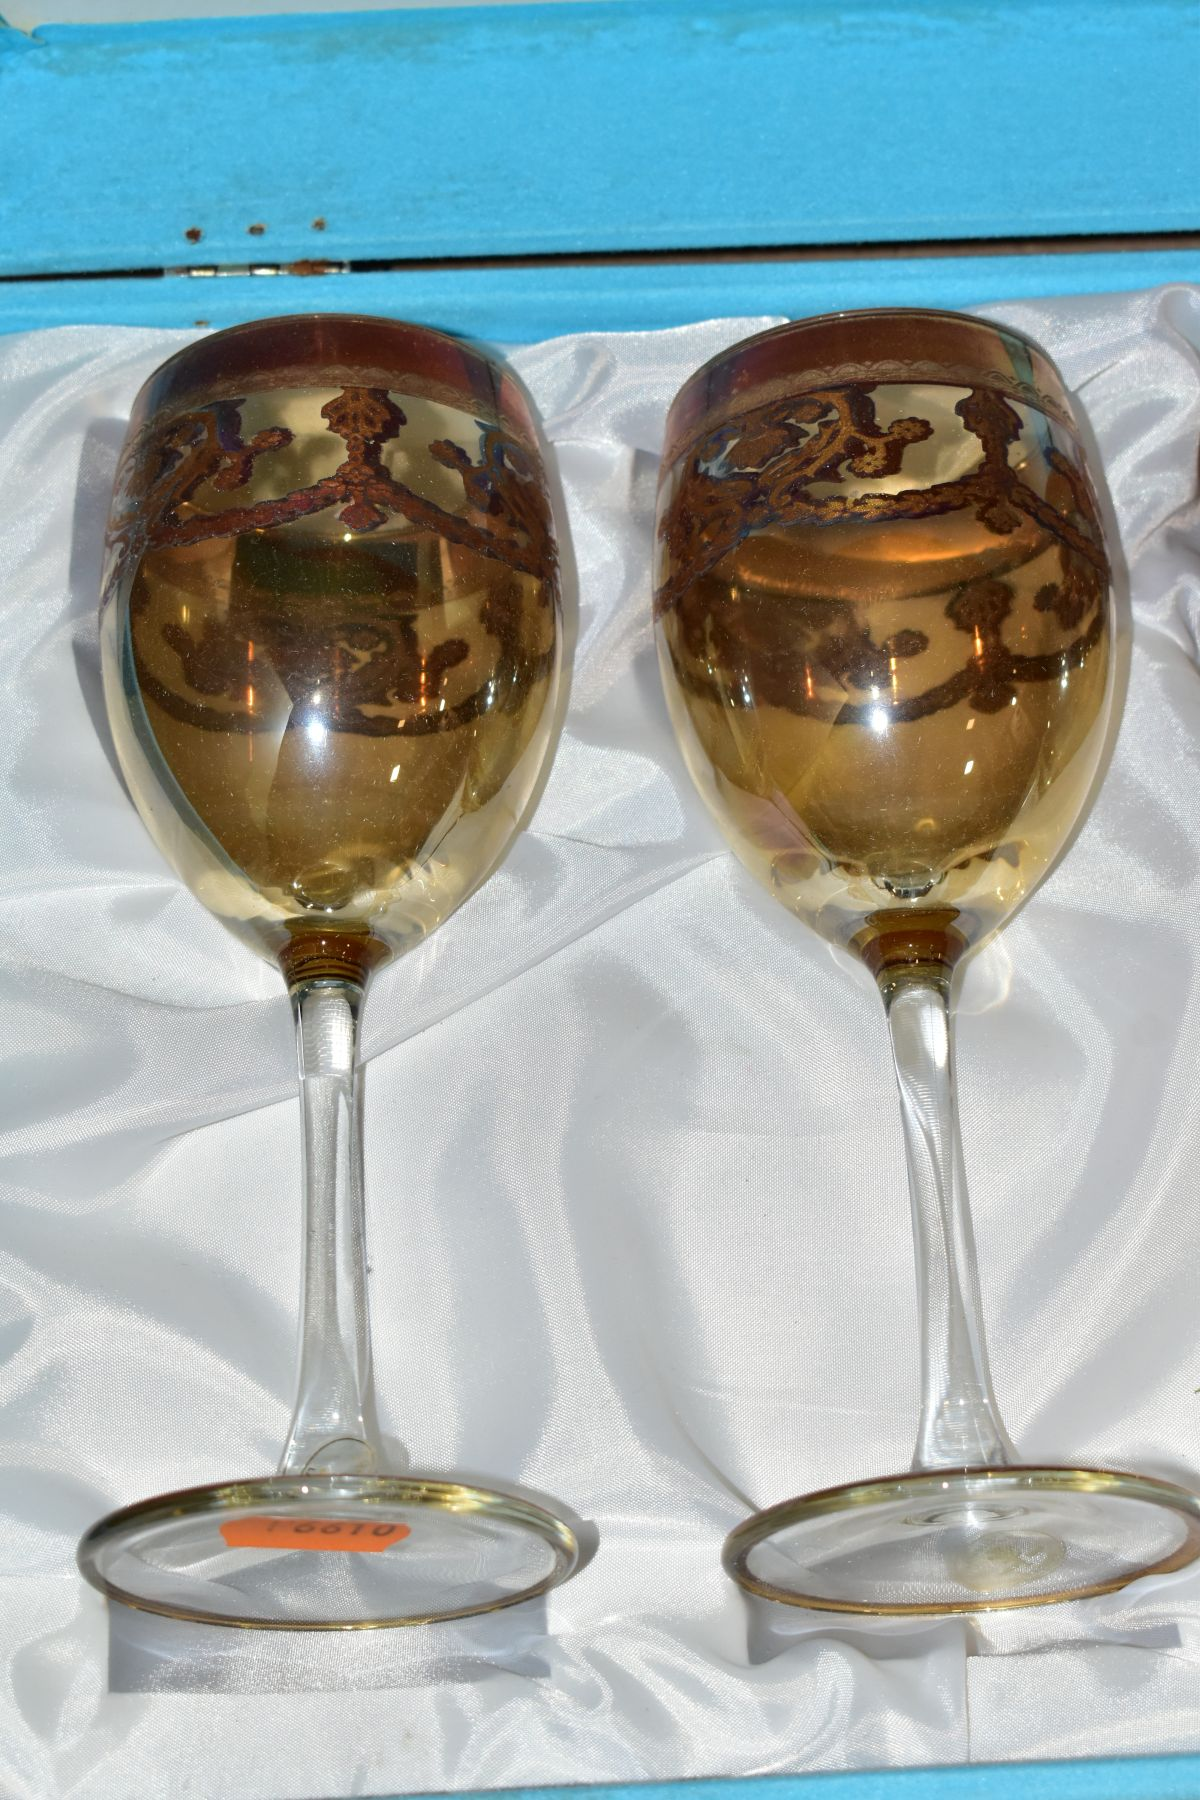 A GROUP OF GLASSWARE, including a boxed set of six Crystallera F.lli Fumo wine glasses, one set - Image 9 of 11